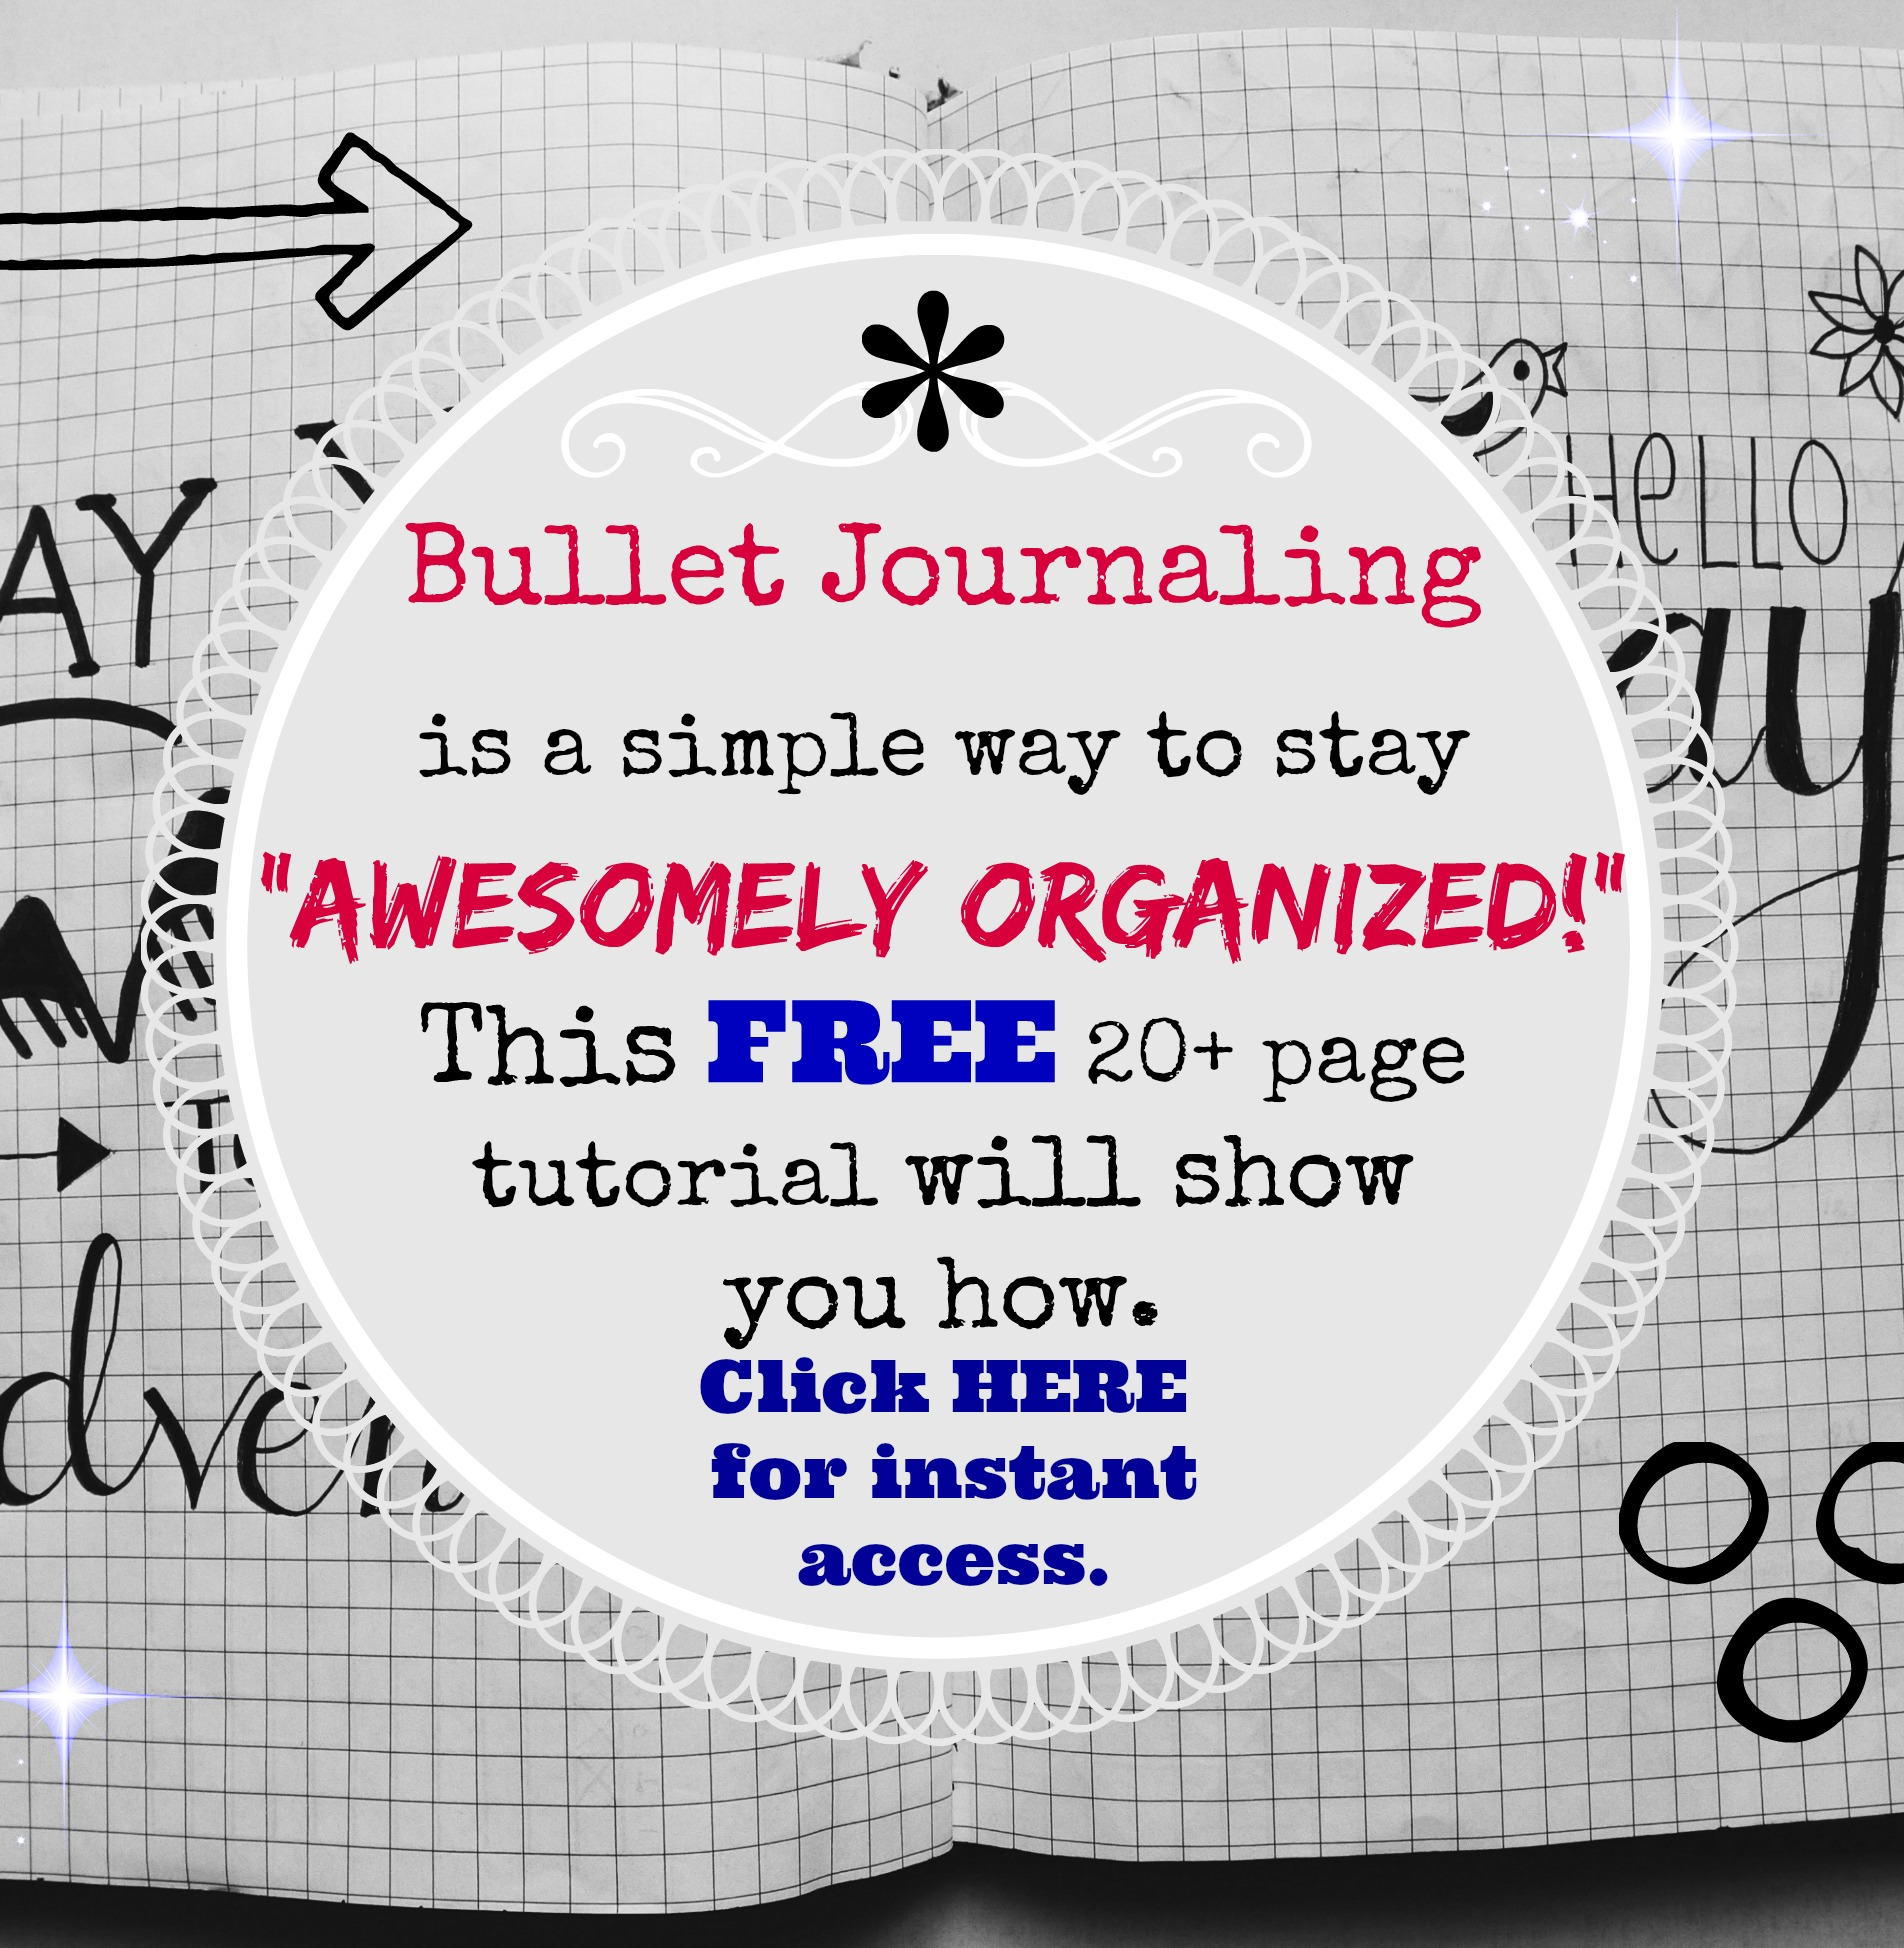 Bullet Journaling: A Secret Weapon for Staying Awesomely Organized